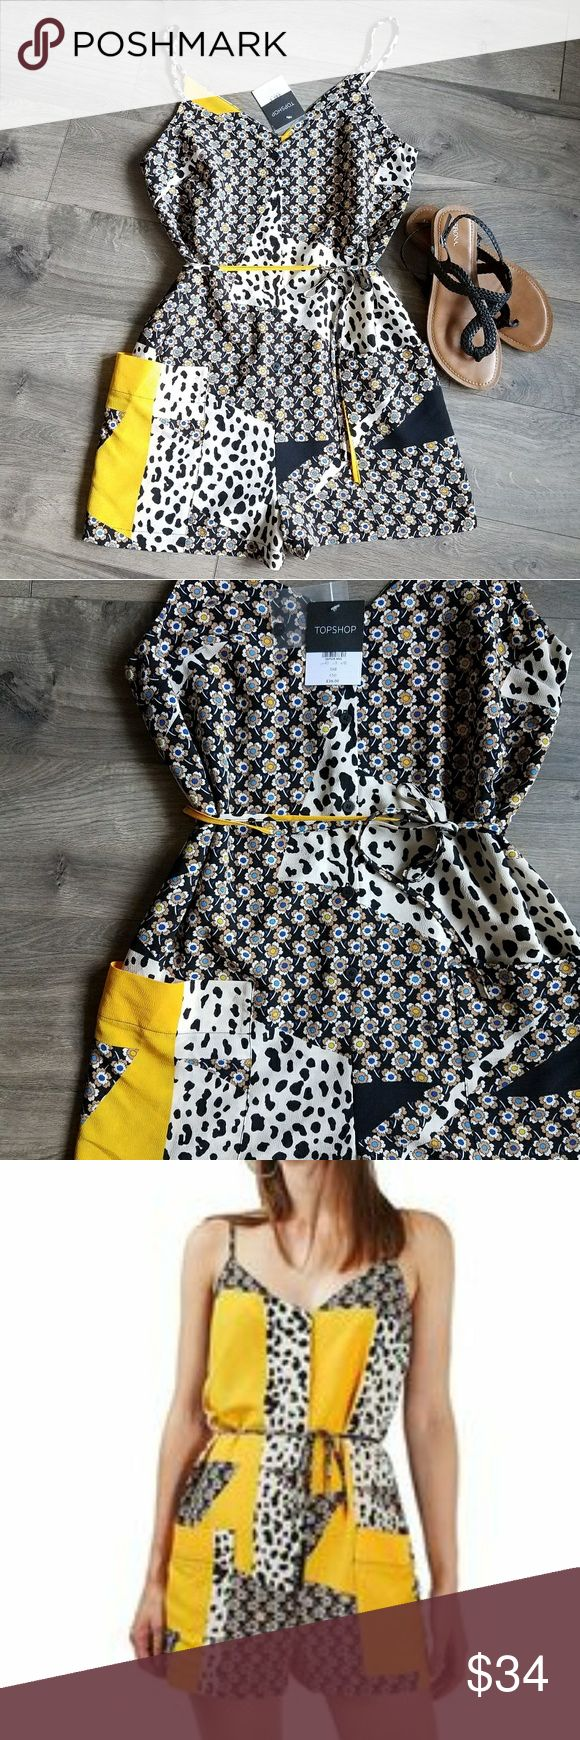 ⬇PRICE DROP⬇ TOPSHOP animal and daisy print romper New with tags TOPSHOP animal and daisy print romper.   Super cute and stylish. Featuring front buttons and belt. Topshop Shorts